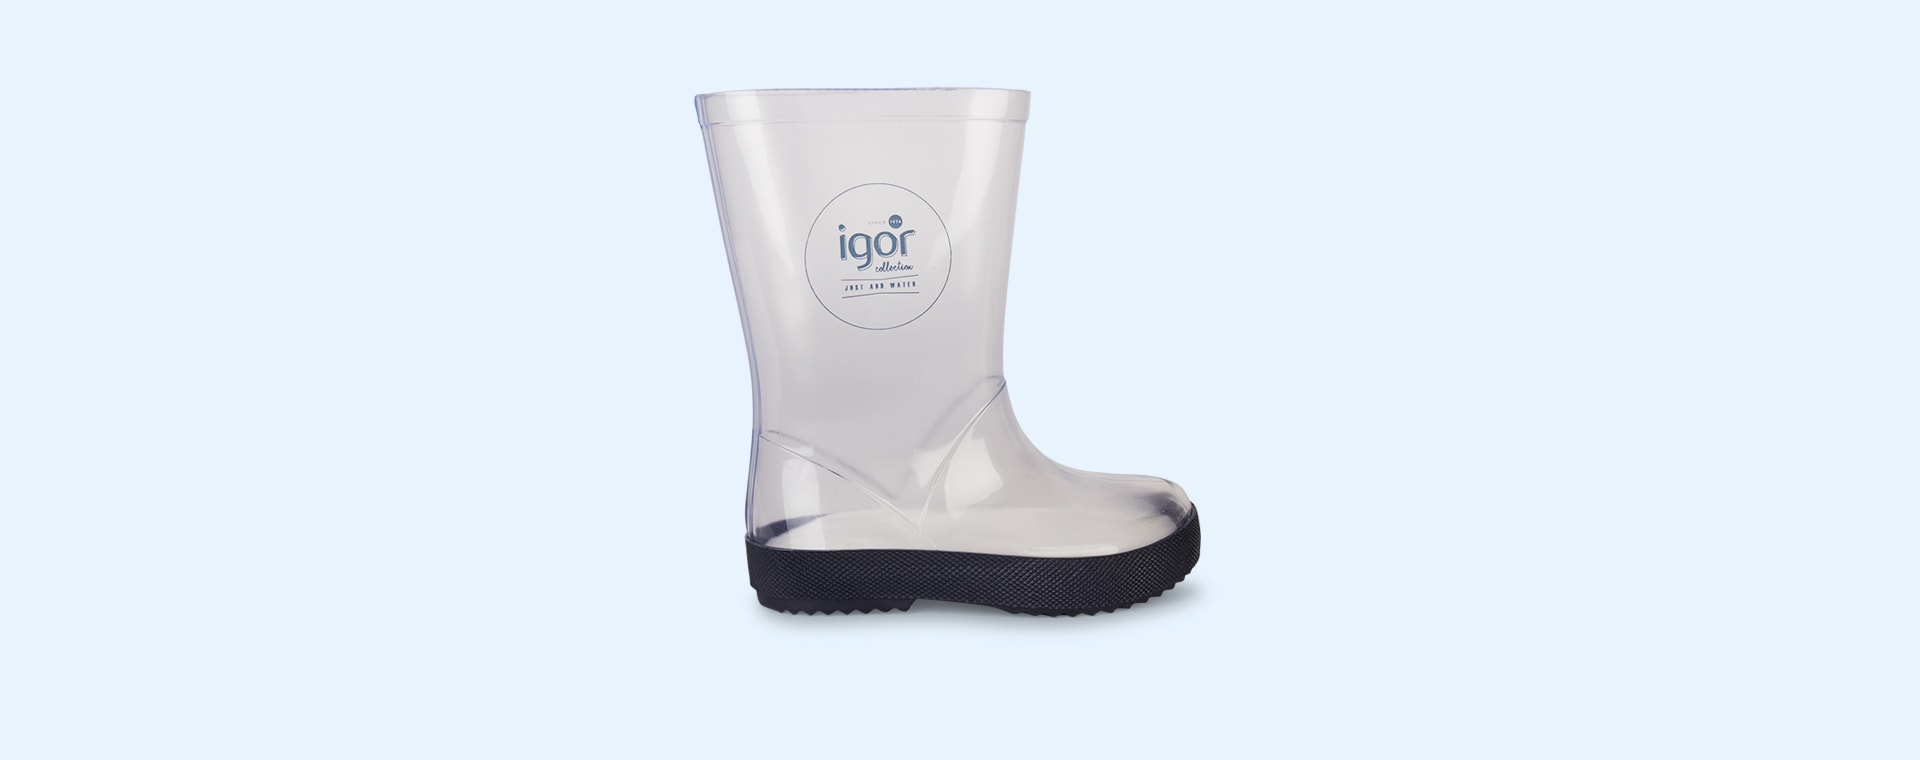 Navy igor Splash Crystal Transparent Wellies & Socks